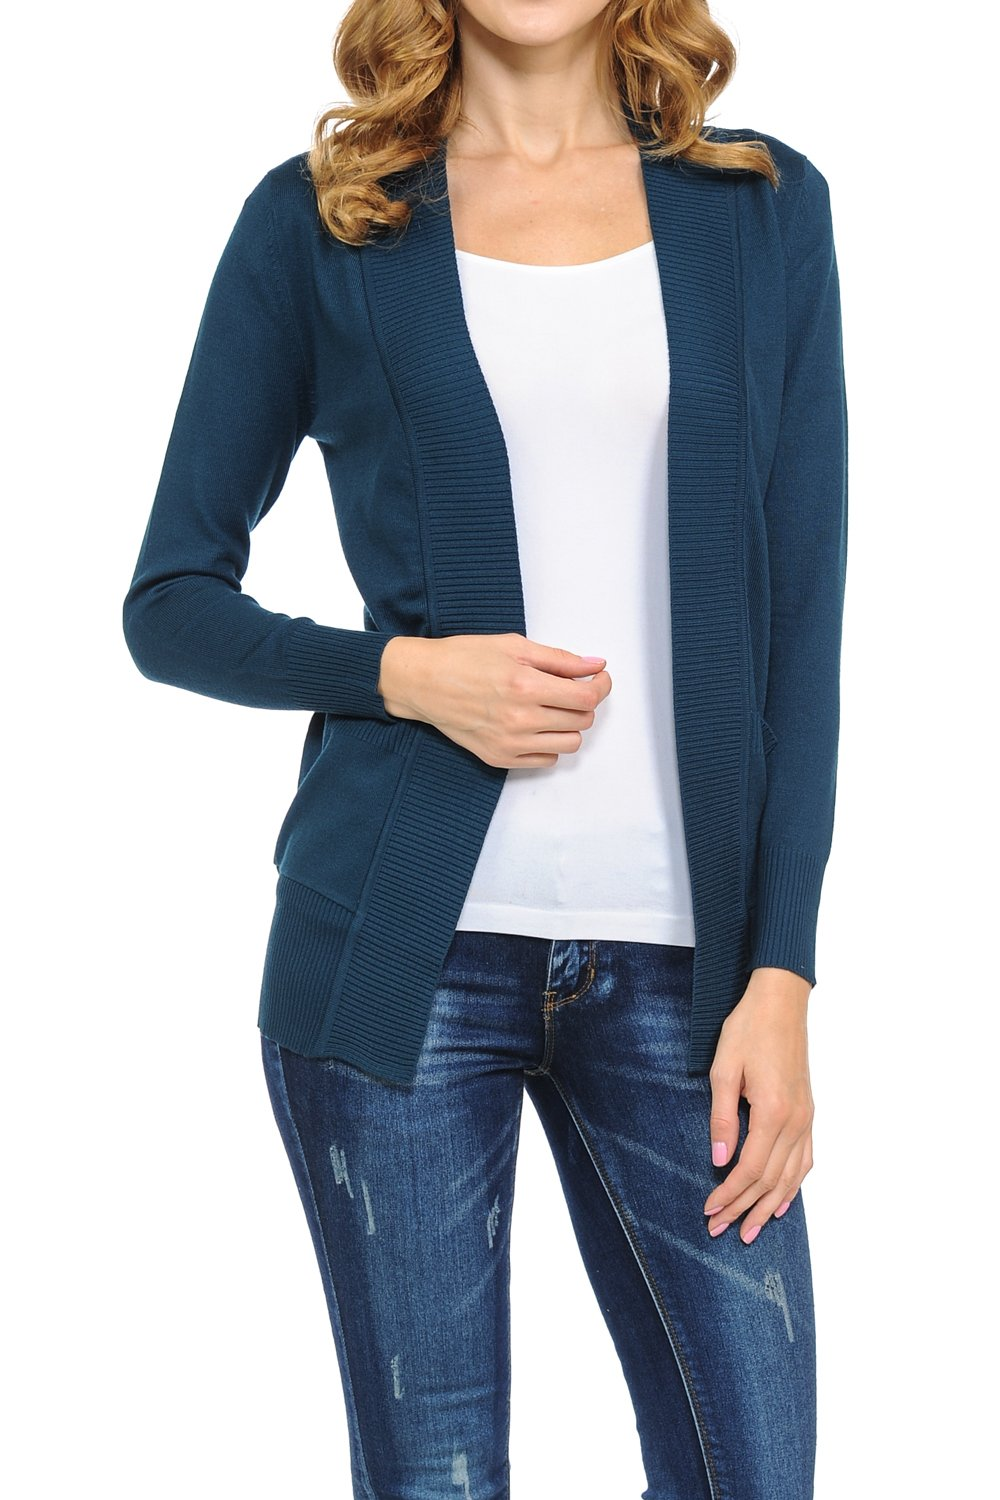 KB Apparel Women's Classic Casual Solid Open Front Sweater Knit Cardigan Deep Teal 2XL